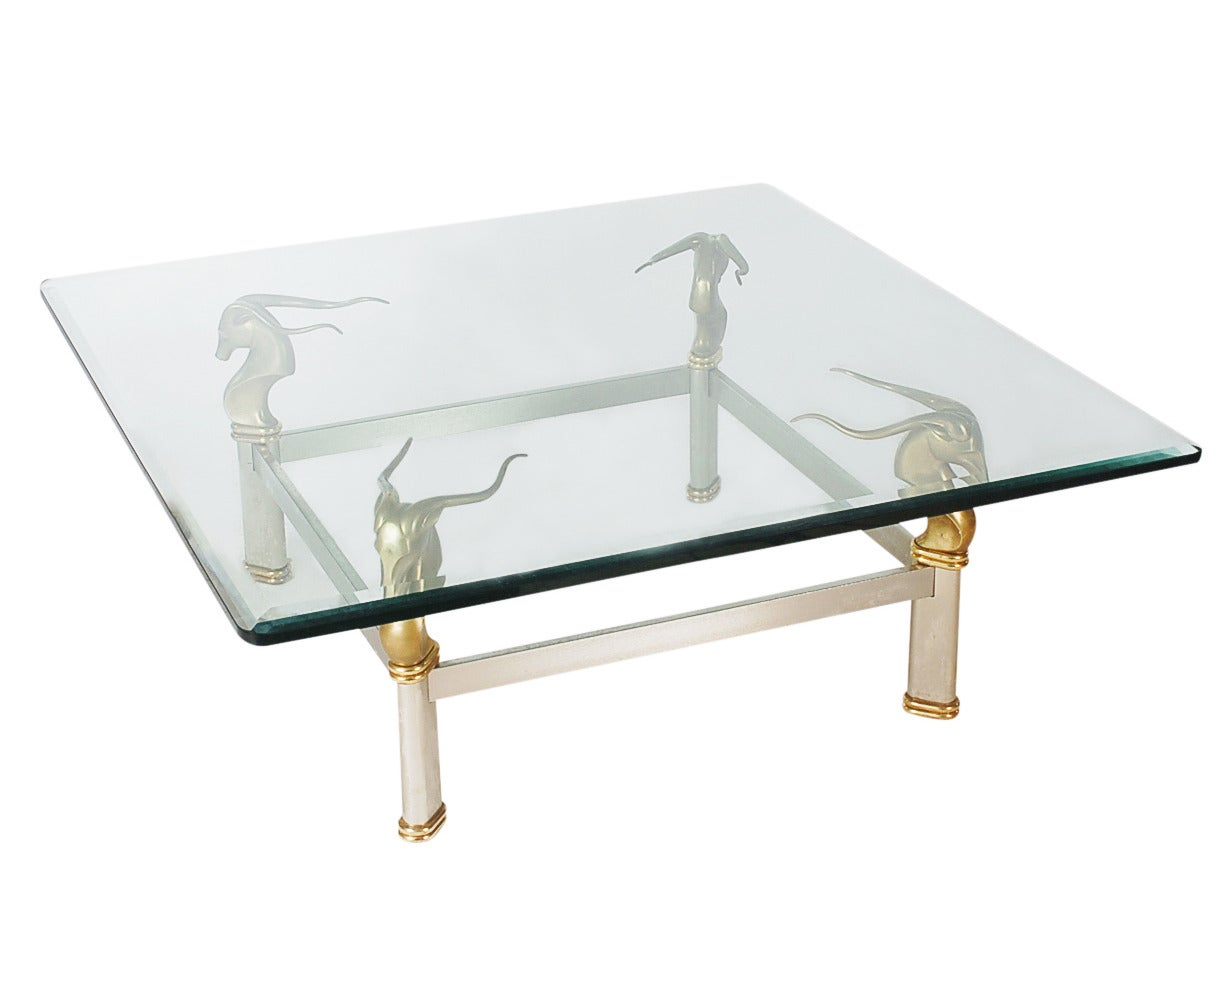 A chic looking two-tone coffee table with a Gazelle head motif. It features brushed stainless steel and solid brass frame, with a thick heavy glass top.